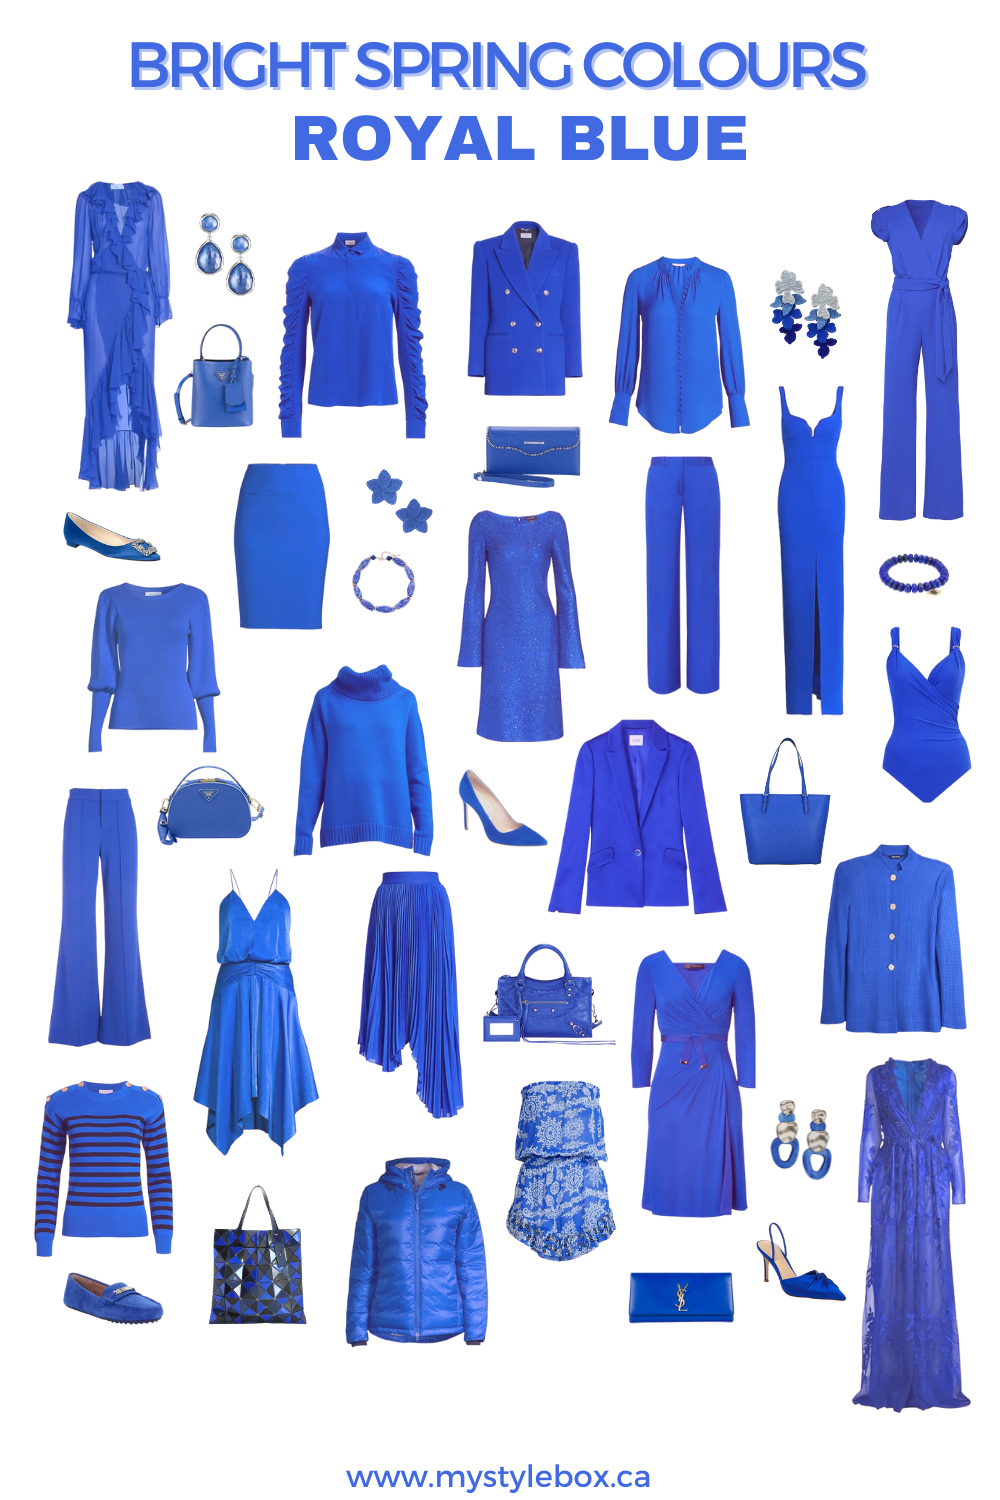 BRIGHT SPRING COLOURS ROYAL BLUE